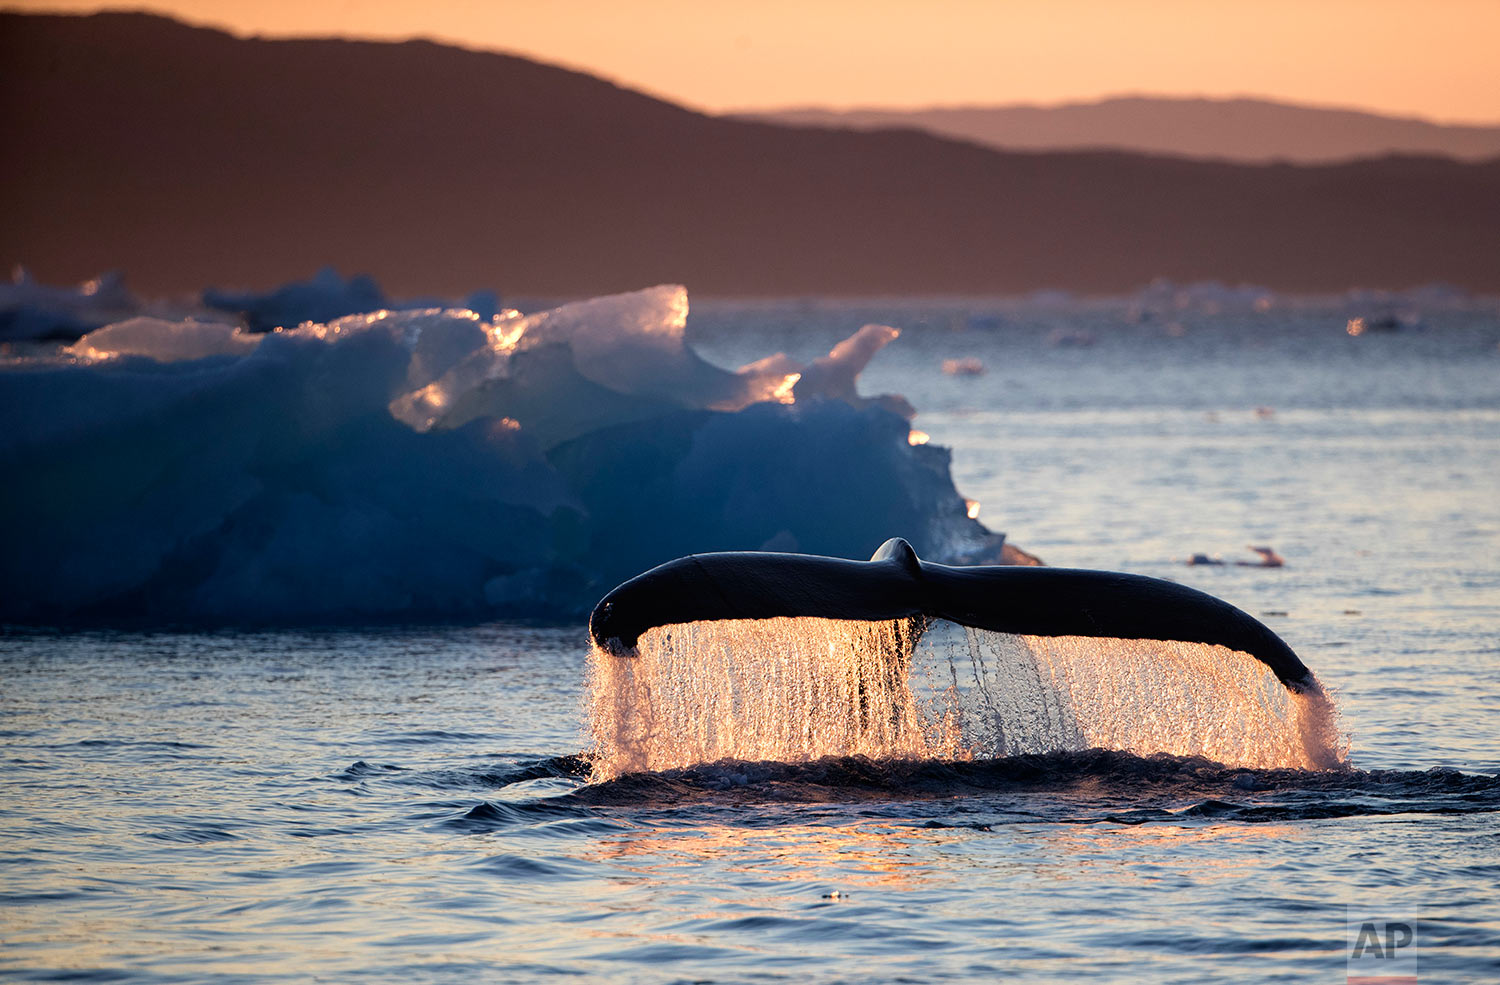 """A humpback whale dives while swimming in the Nuup Kangerlua Fjord near Nuuk in southwestern Greenland, Tuesday, Aug. 1, 2017. People are so far removed from the Arctic that they don't understand it, they don't know it and they don't love it,"""" said Paula von Weller, a field biologist. """"I think it's important for people to see what's here and to fall in love with it and have a bond and want to protect it."""" (AP Photo/David Goldman)"""